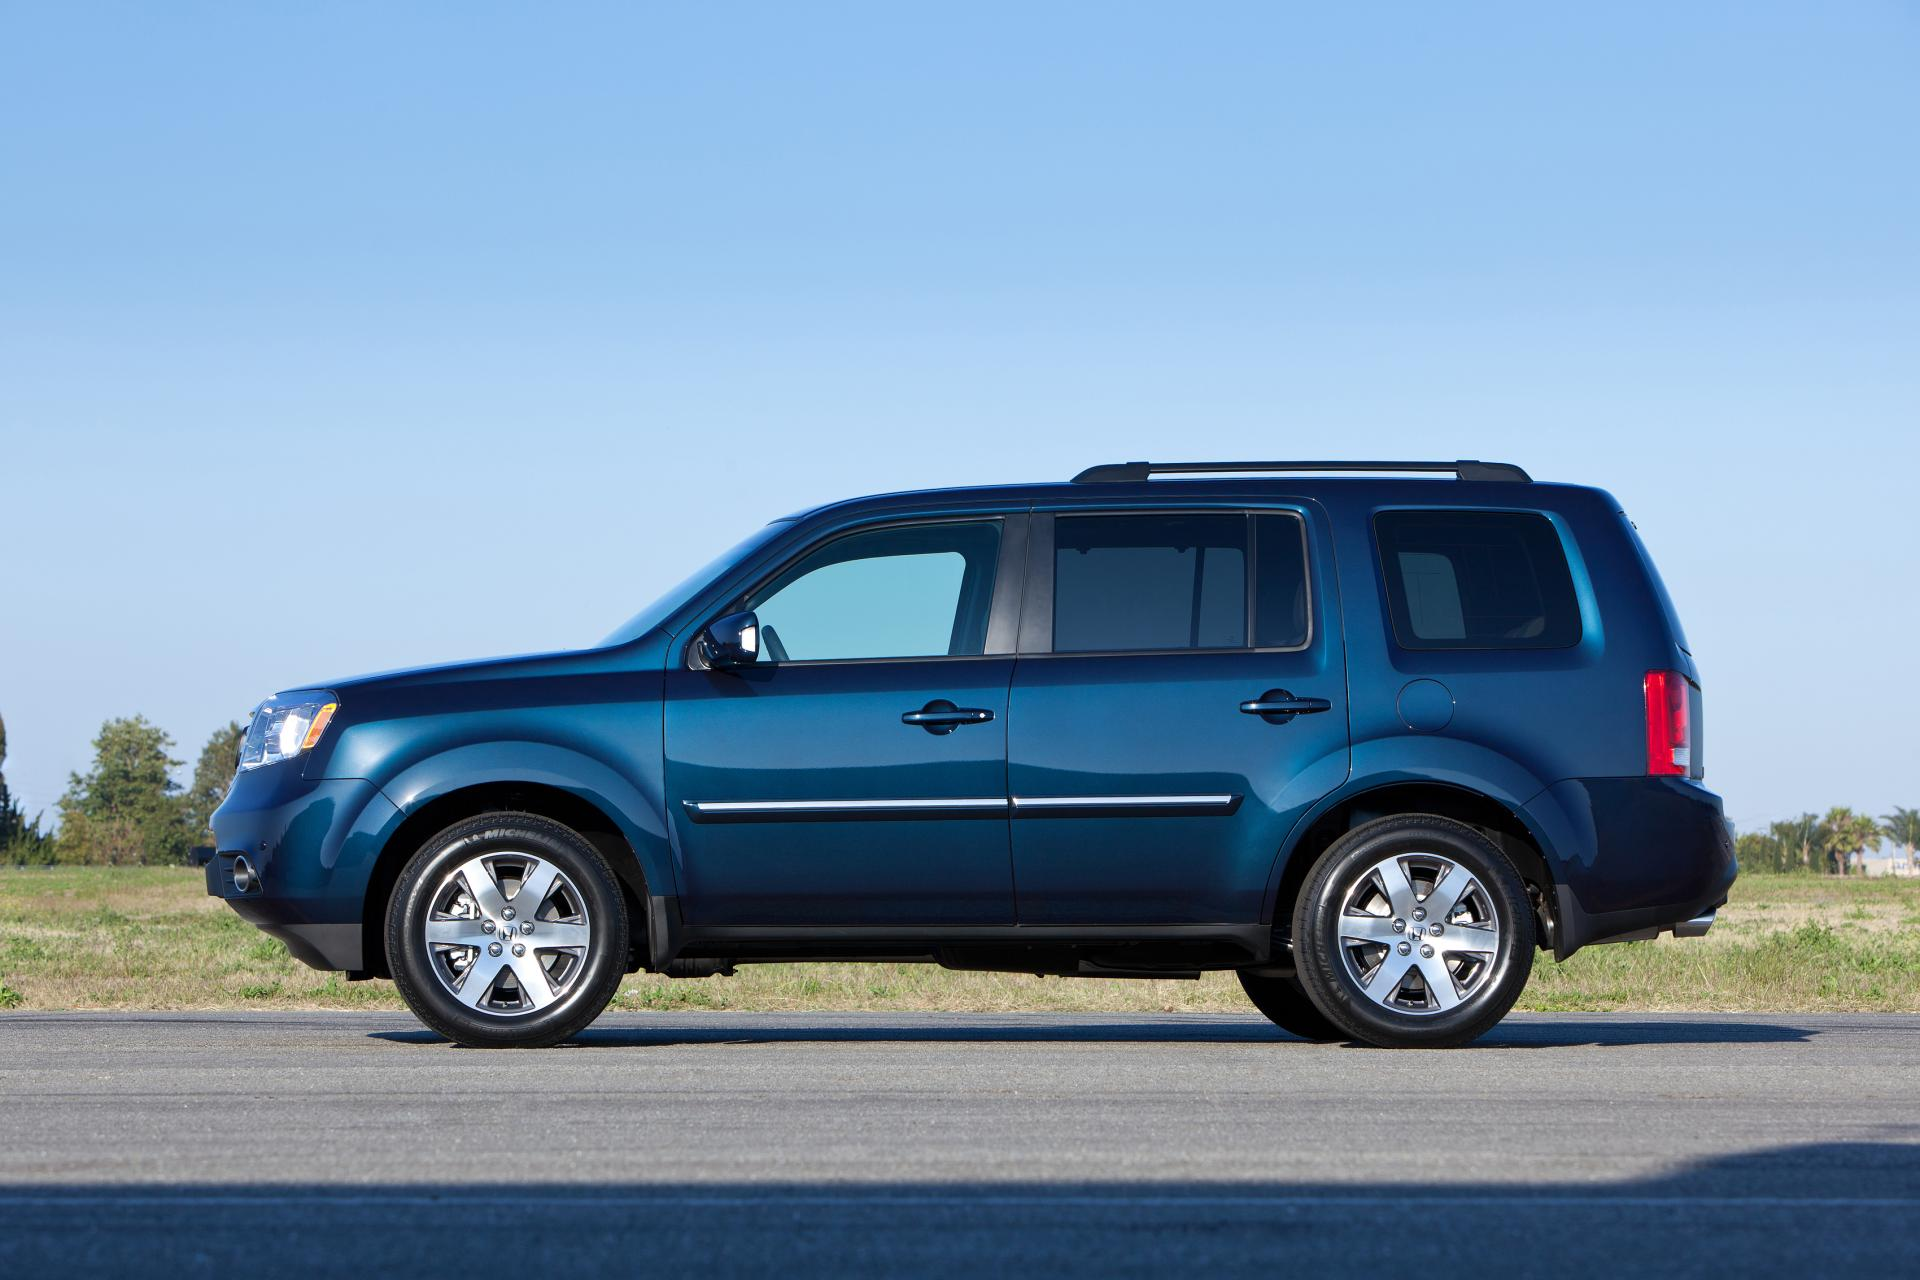 2012 honda pilot for Honda pilot images